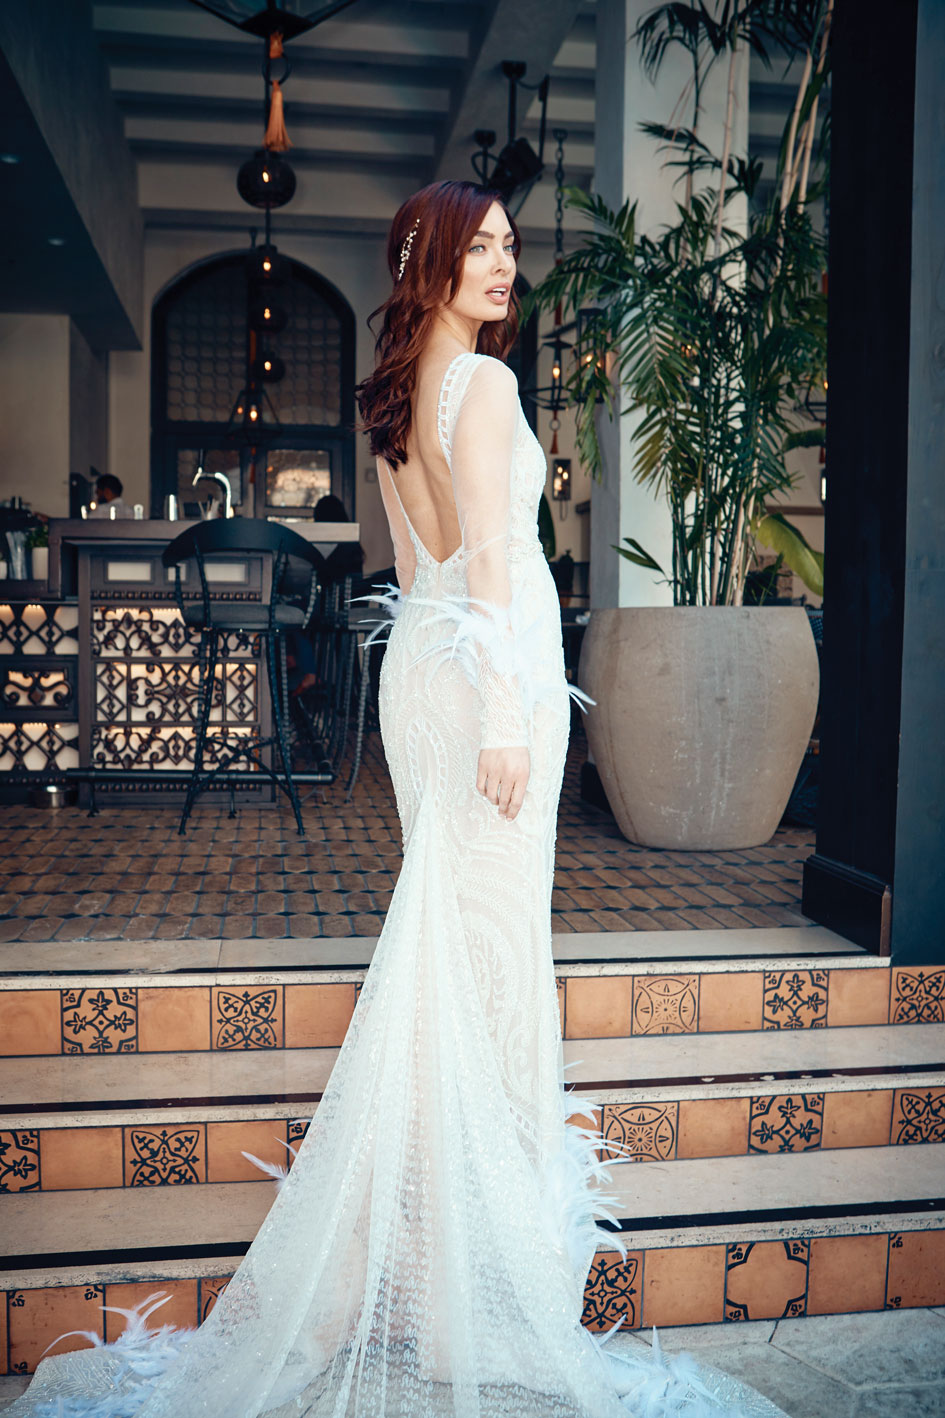 323dadc961ff99 Berta bridal gown featuring a beaded plunging neck line with feather  details at the arm and hem, $12,870, from Lovella Bridal in Glendale.